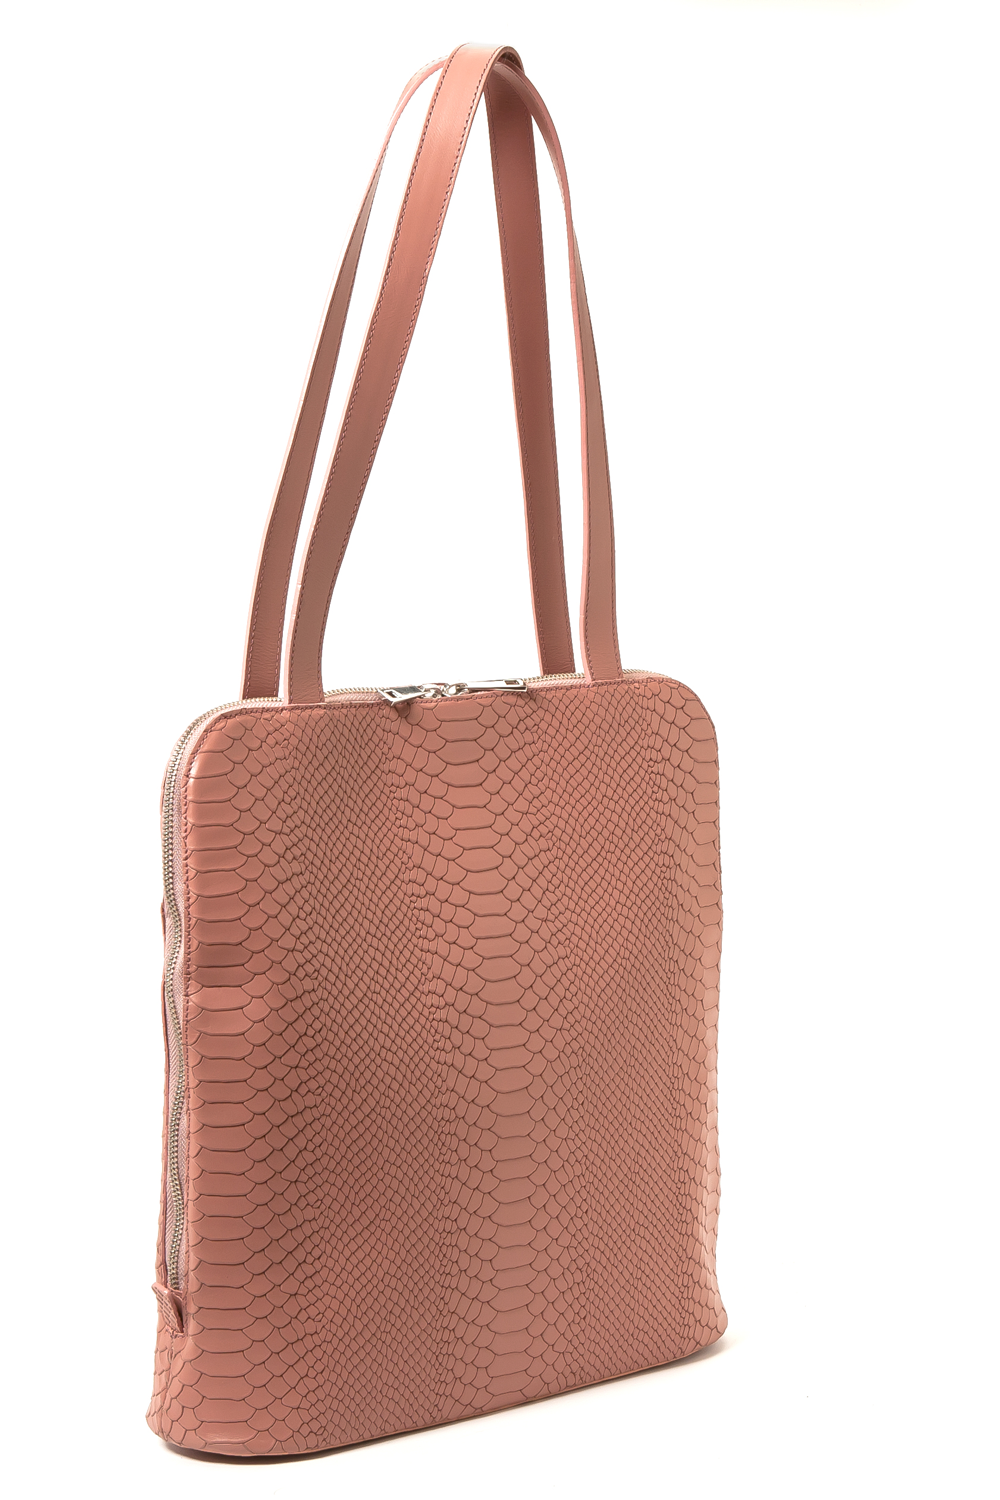 Mel Boteri | Dianne Convertible Tote Backpack | Blush Snake-Effect Leather | Side View